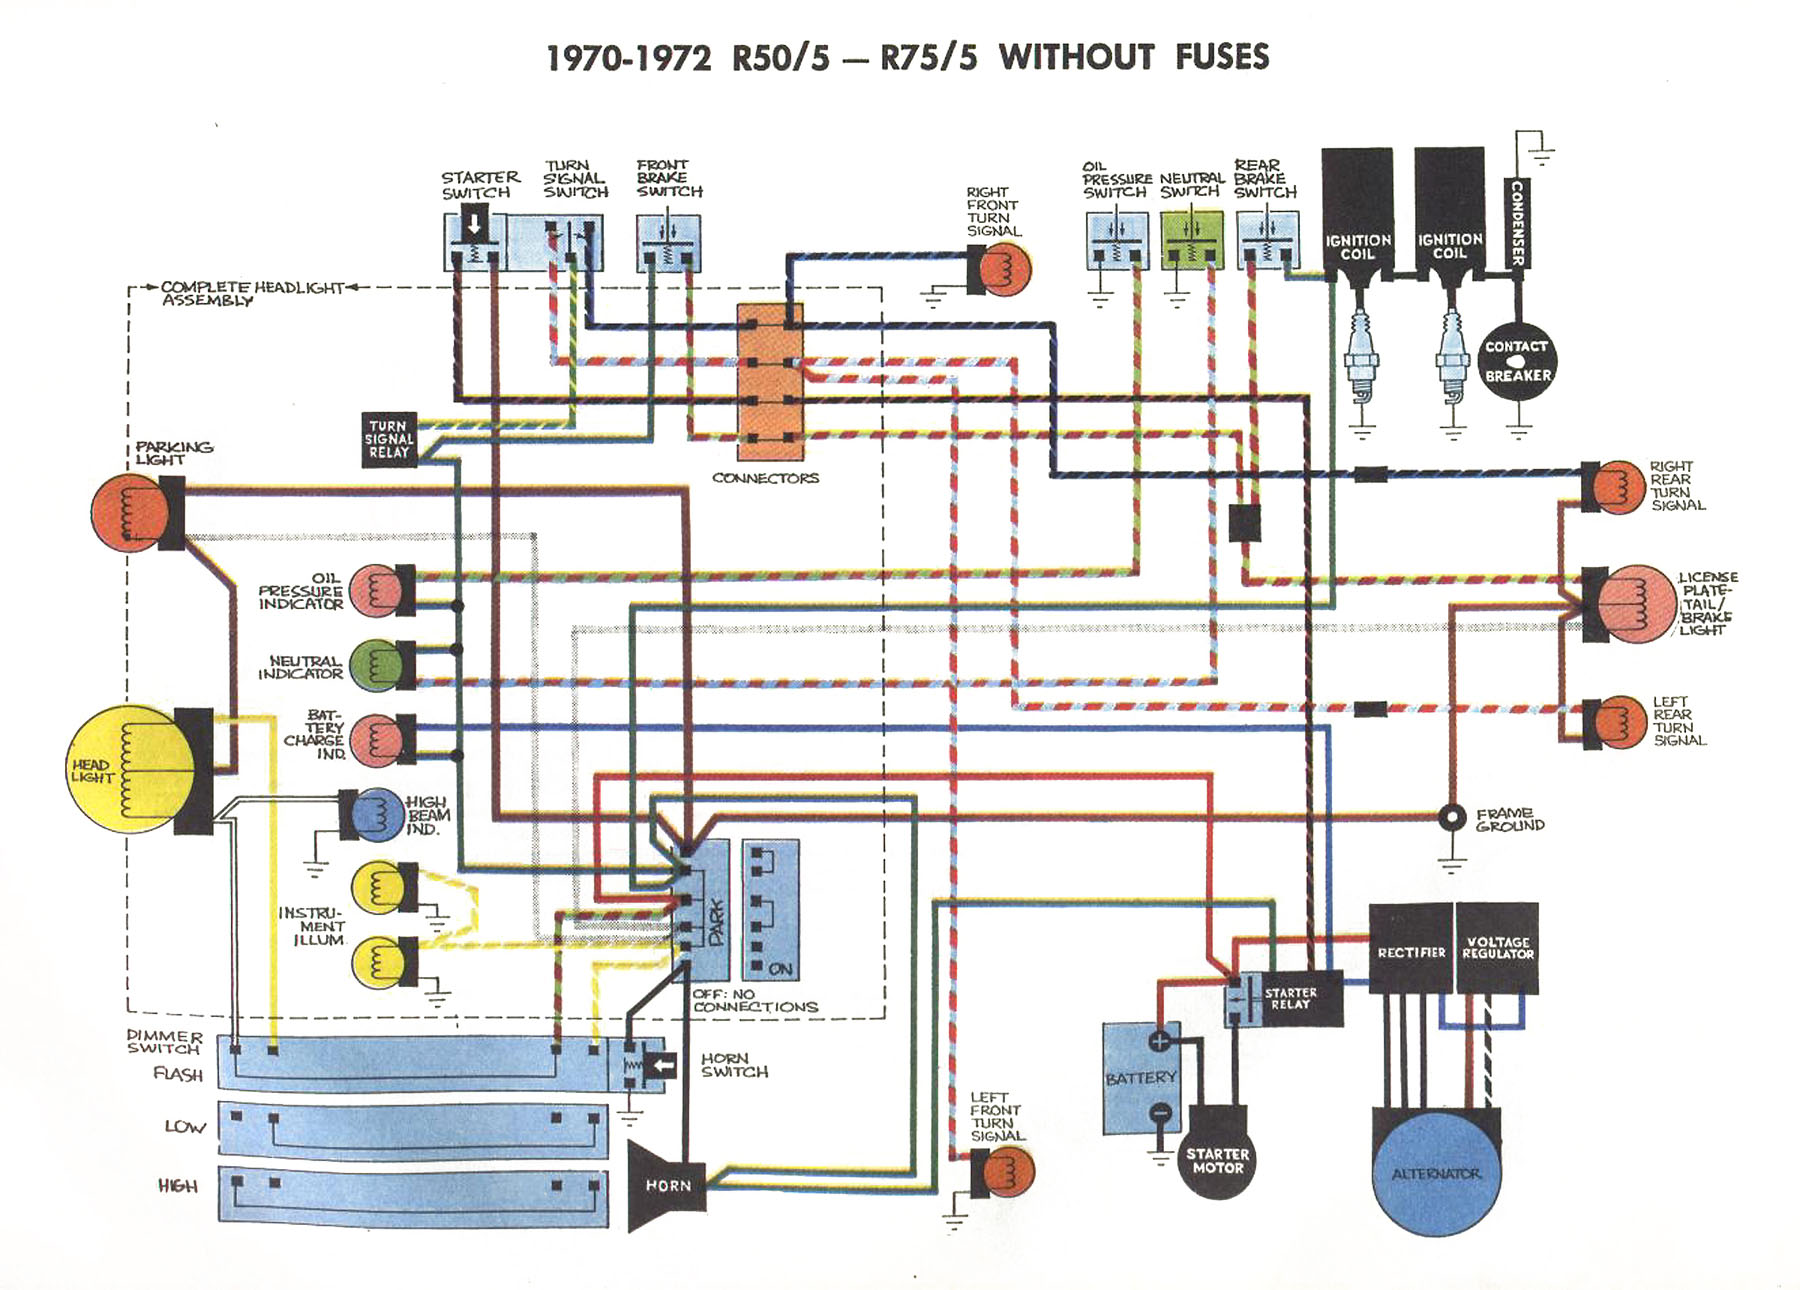 5_unfused_schematic 5 united articles wiring diagrams bmw r100rs gauge wiring diagram at pacquiaovsvargaslive.co